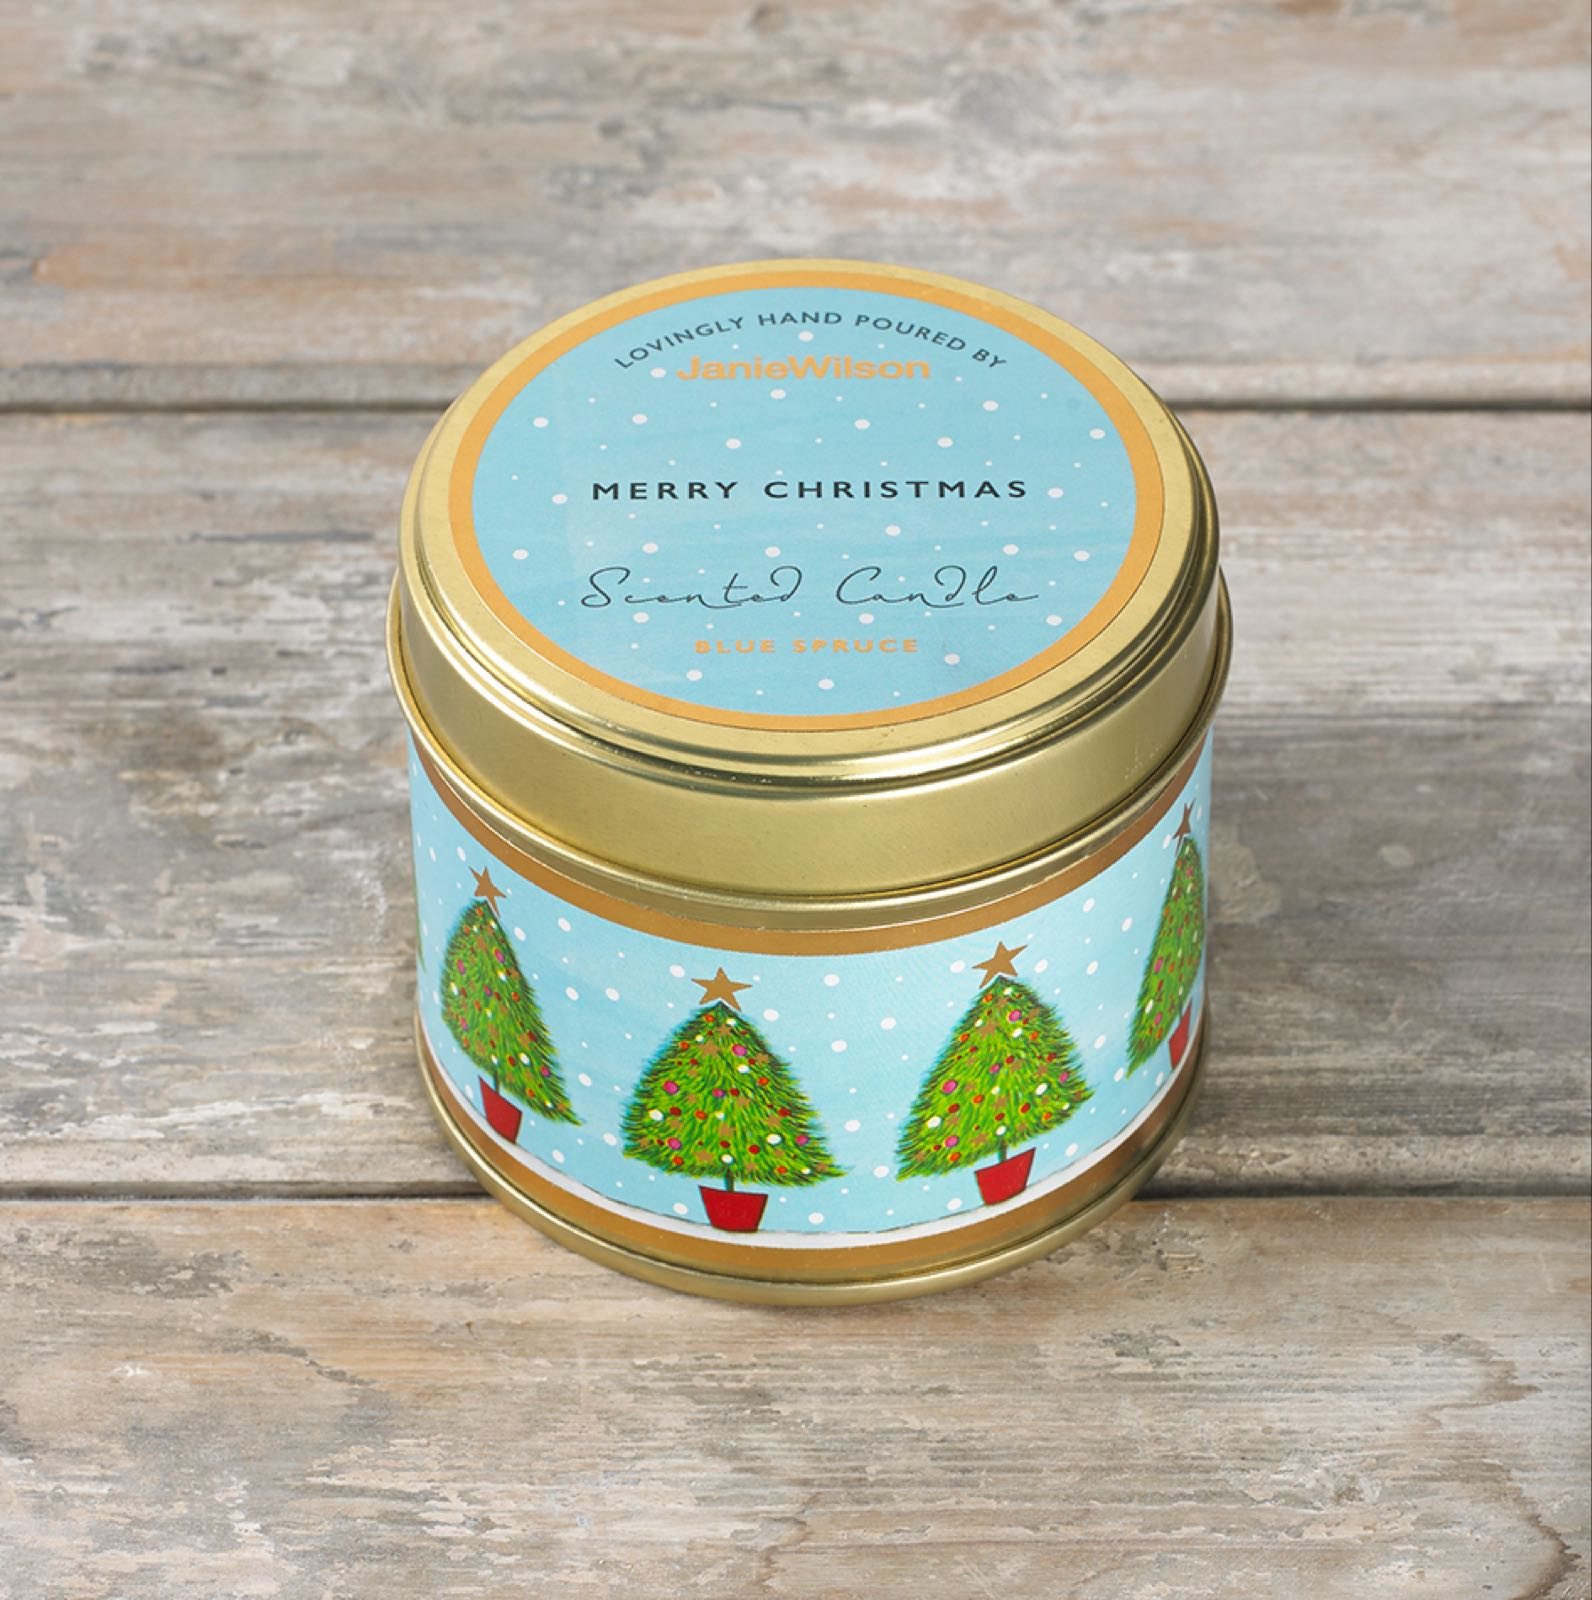 Janie wilson Merry Christmas fragranced blue spruce large tinned candle